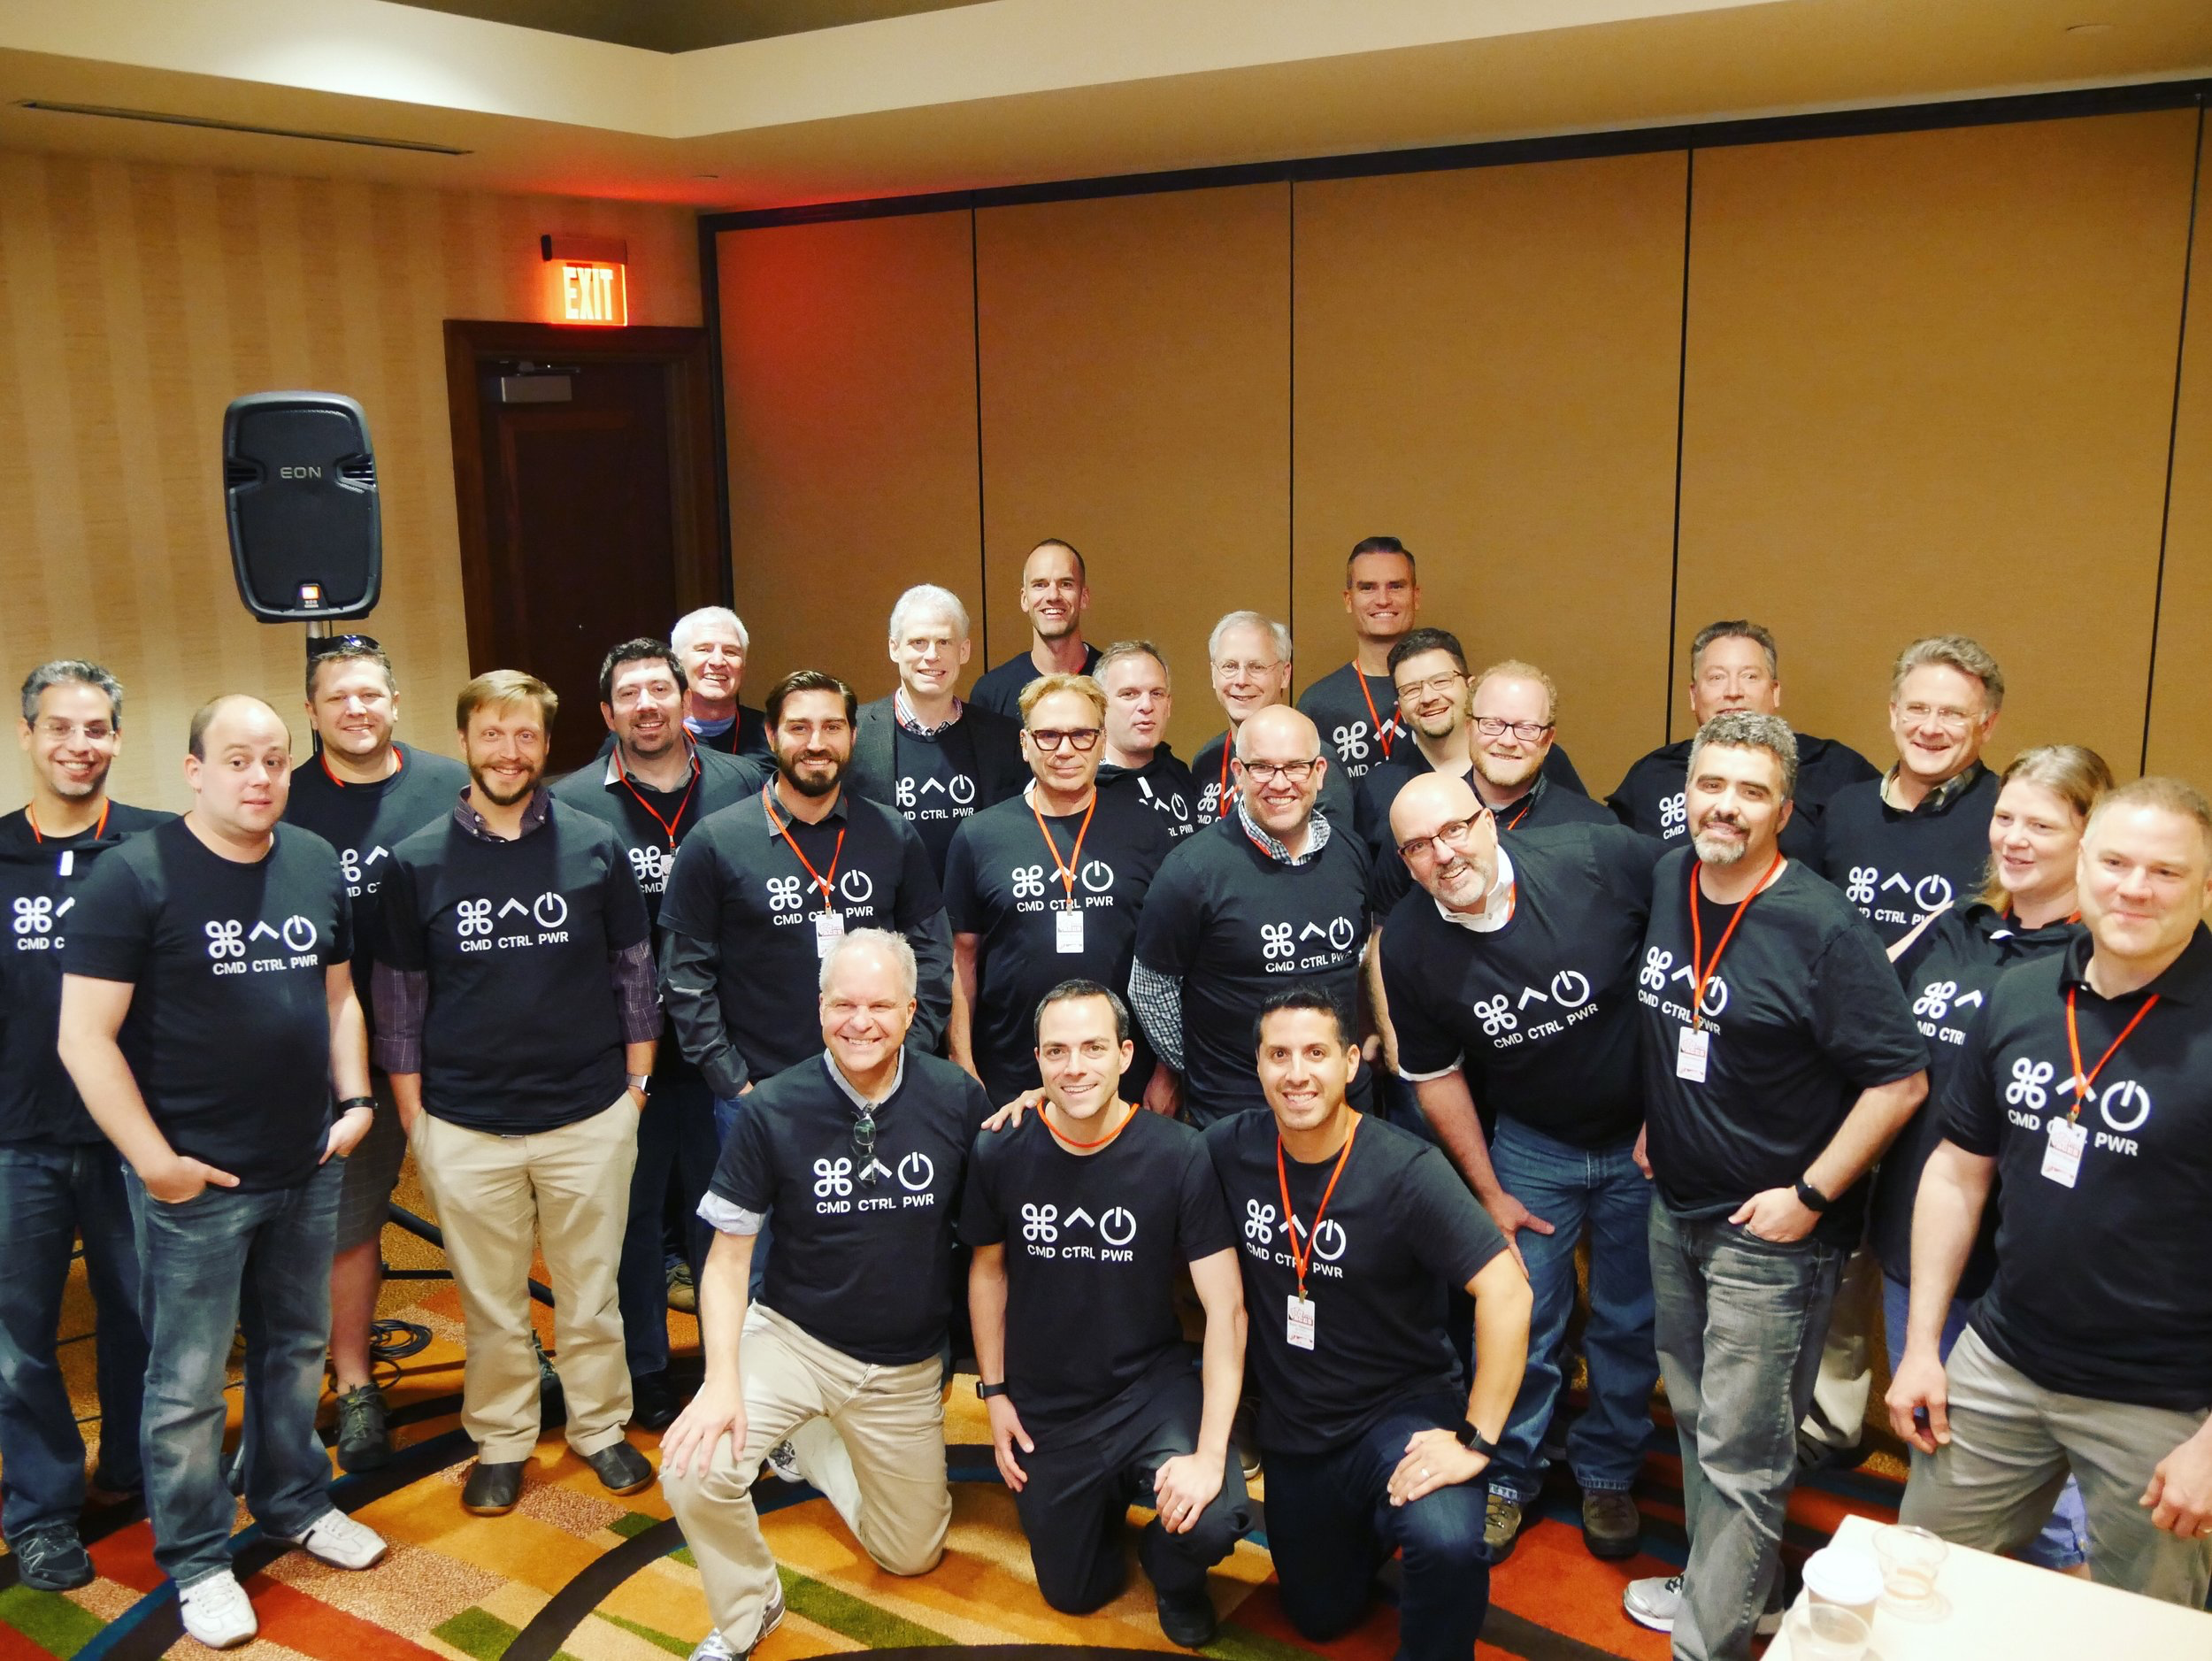 MacWorks, LLC & Command-Control-Power featured at ACES Conference 2018